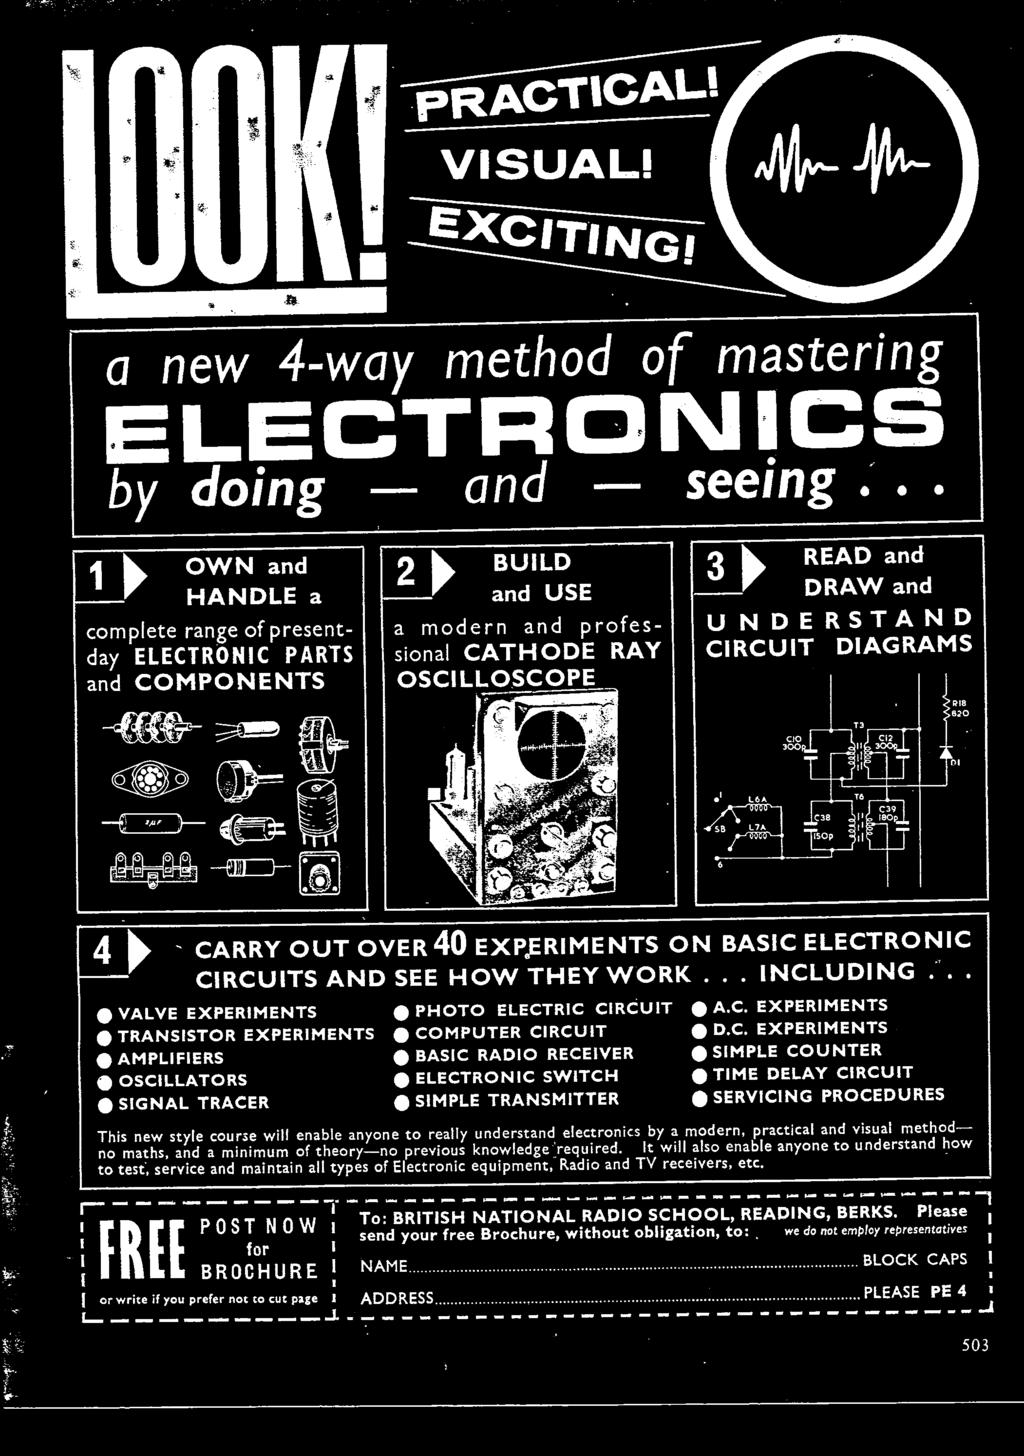 Practical Electroimip Three Shillings July 19b0 Vdurs To Commnnd Figure 12 Schematic Wiring Diagram Dynamotor Welder Uding Valve Experiments 0 Photo Elect